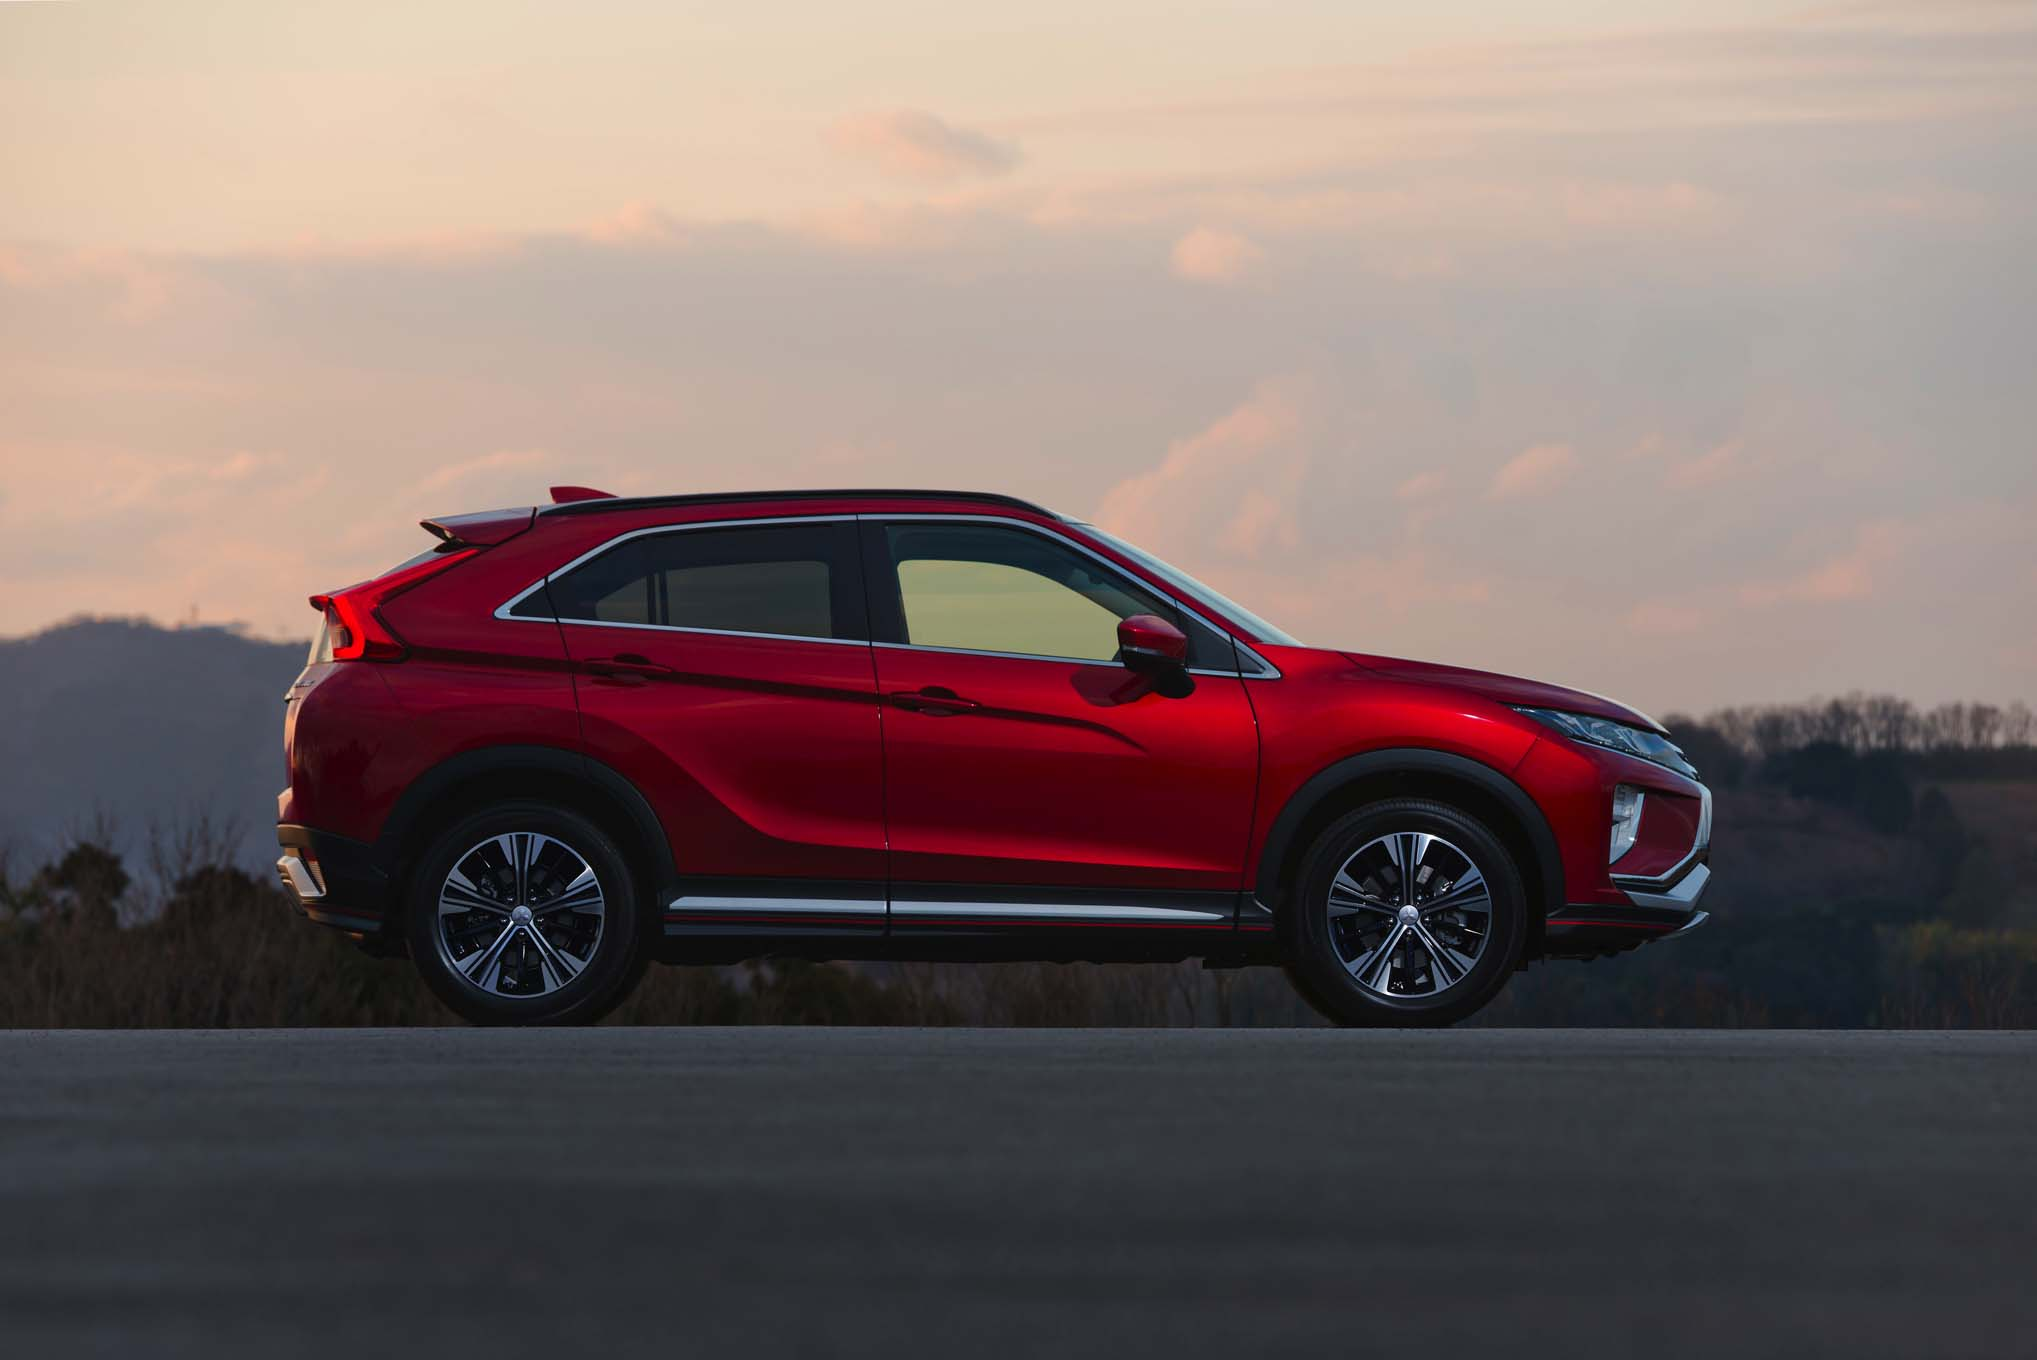 2018-Mitsubishi-Eclipse-Cross-side-profile-2